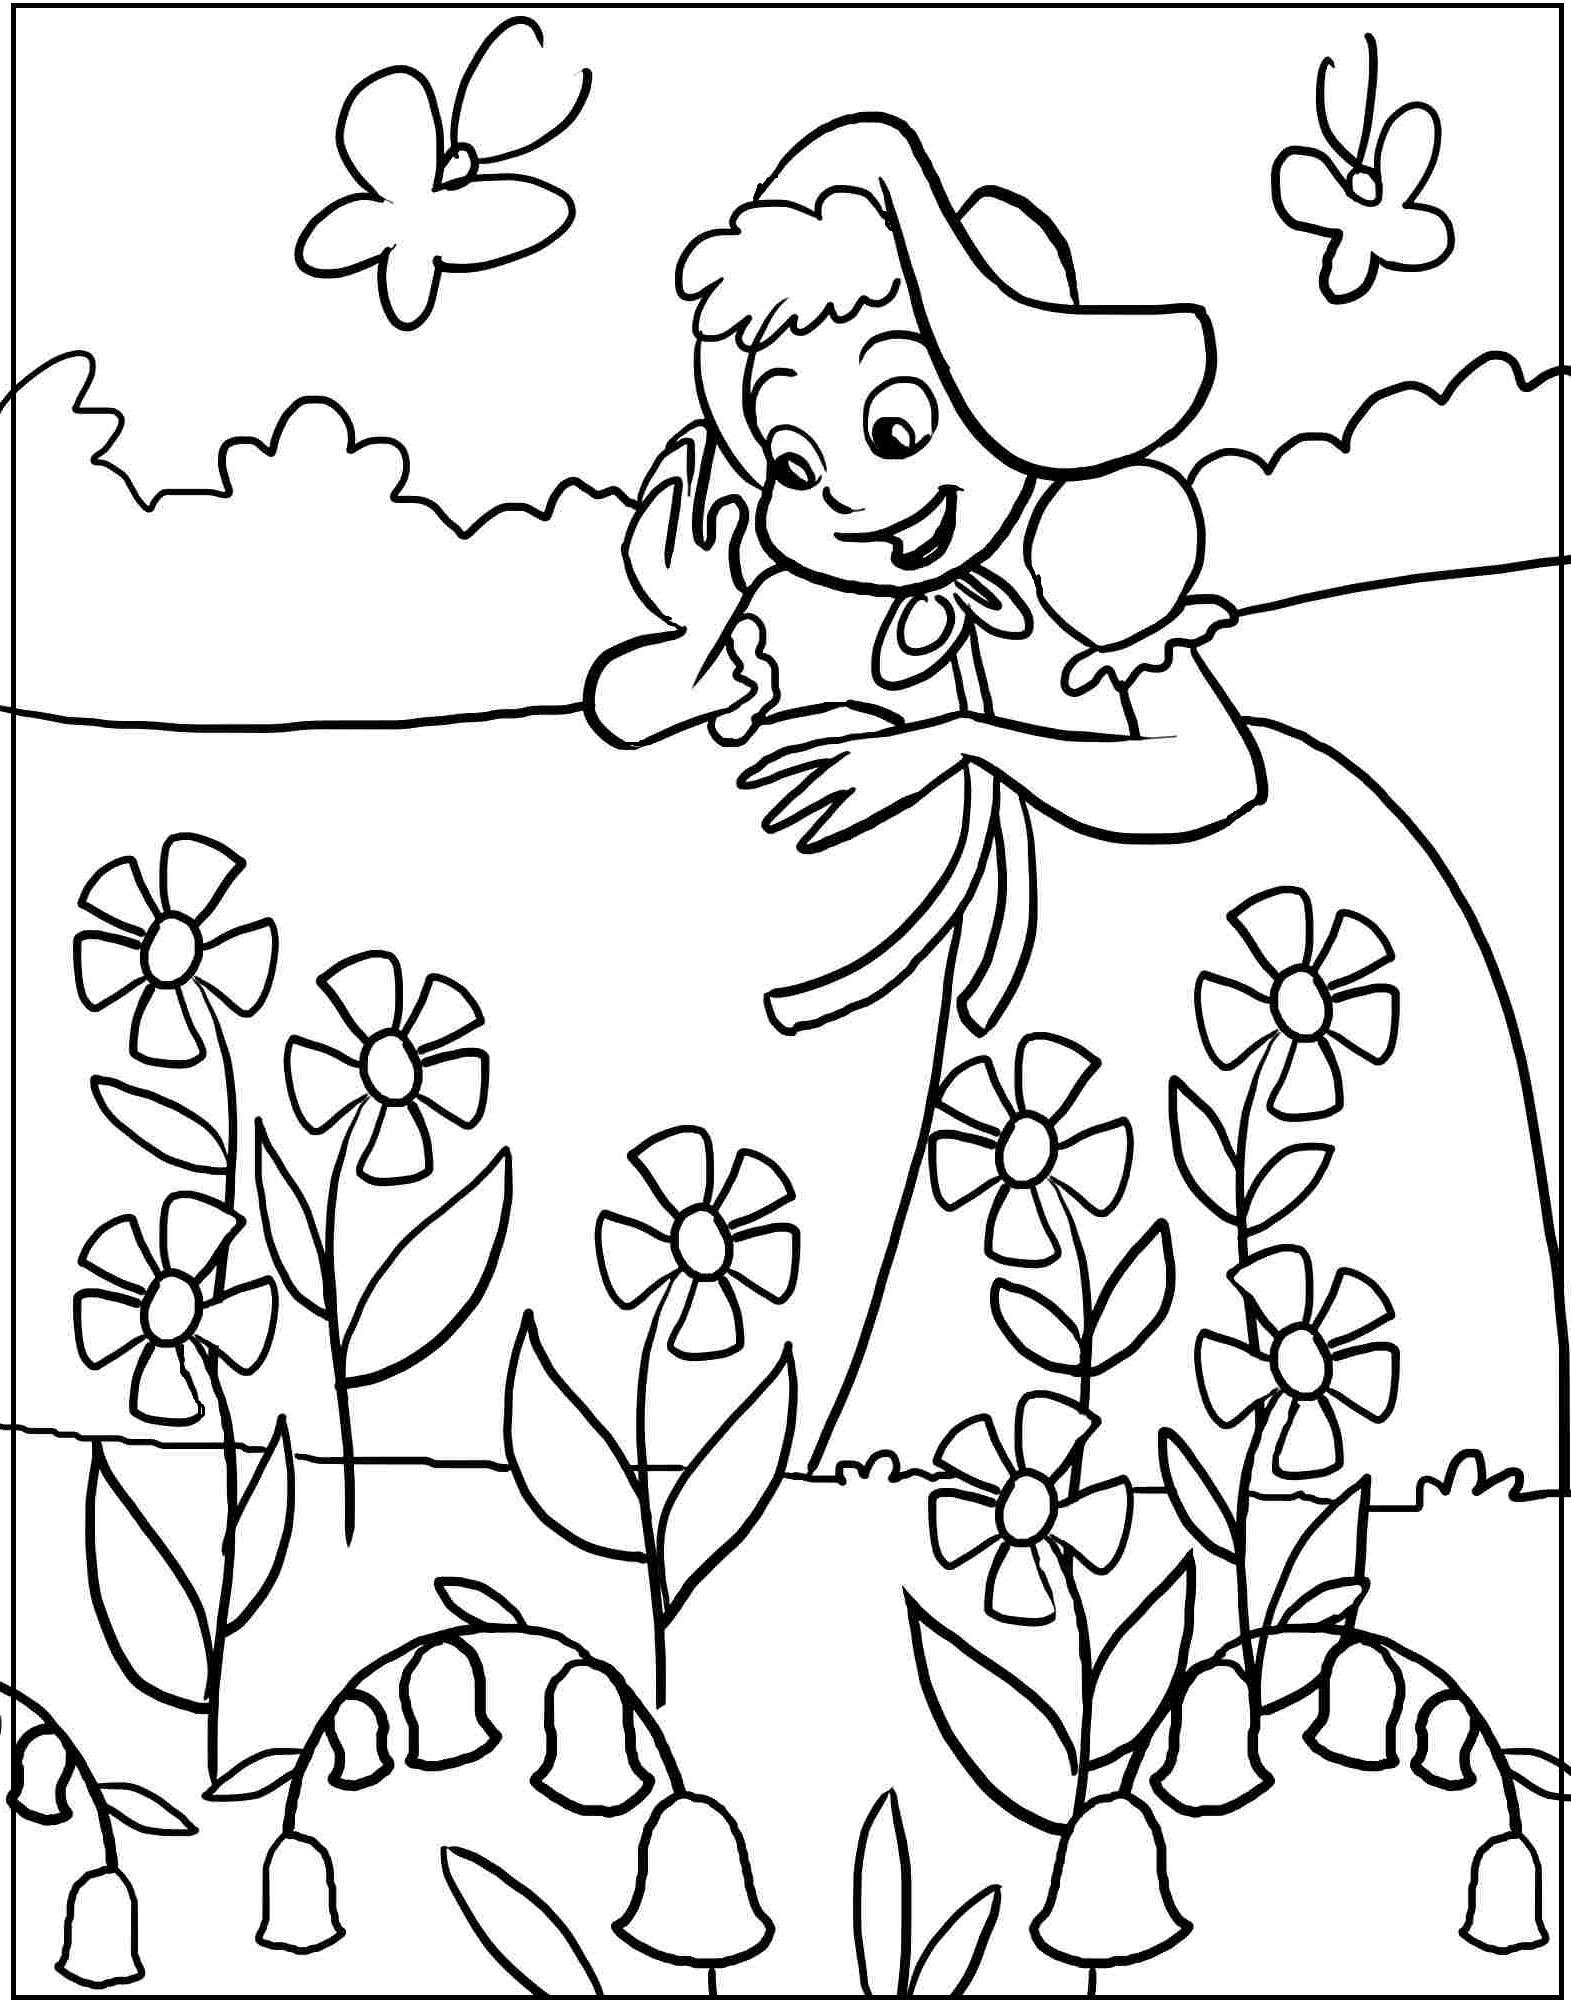 Spring Season Printable coloring picture for kids